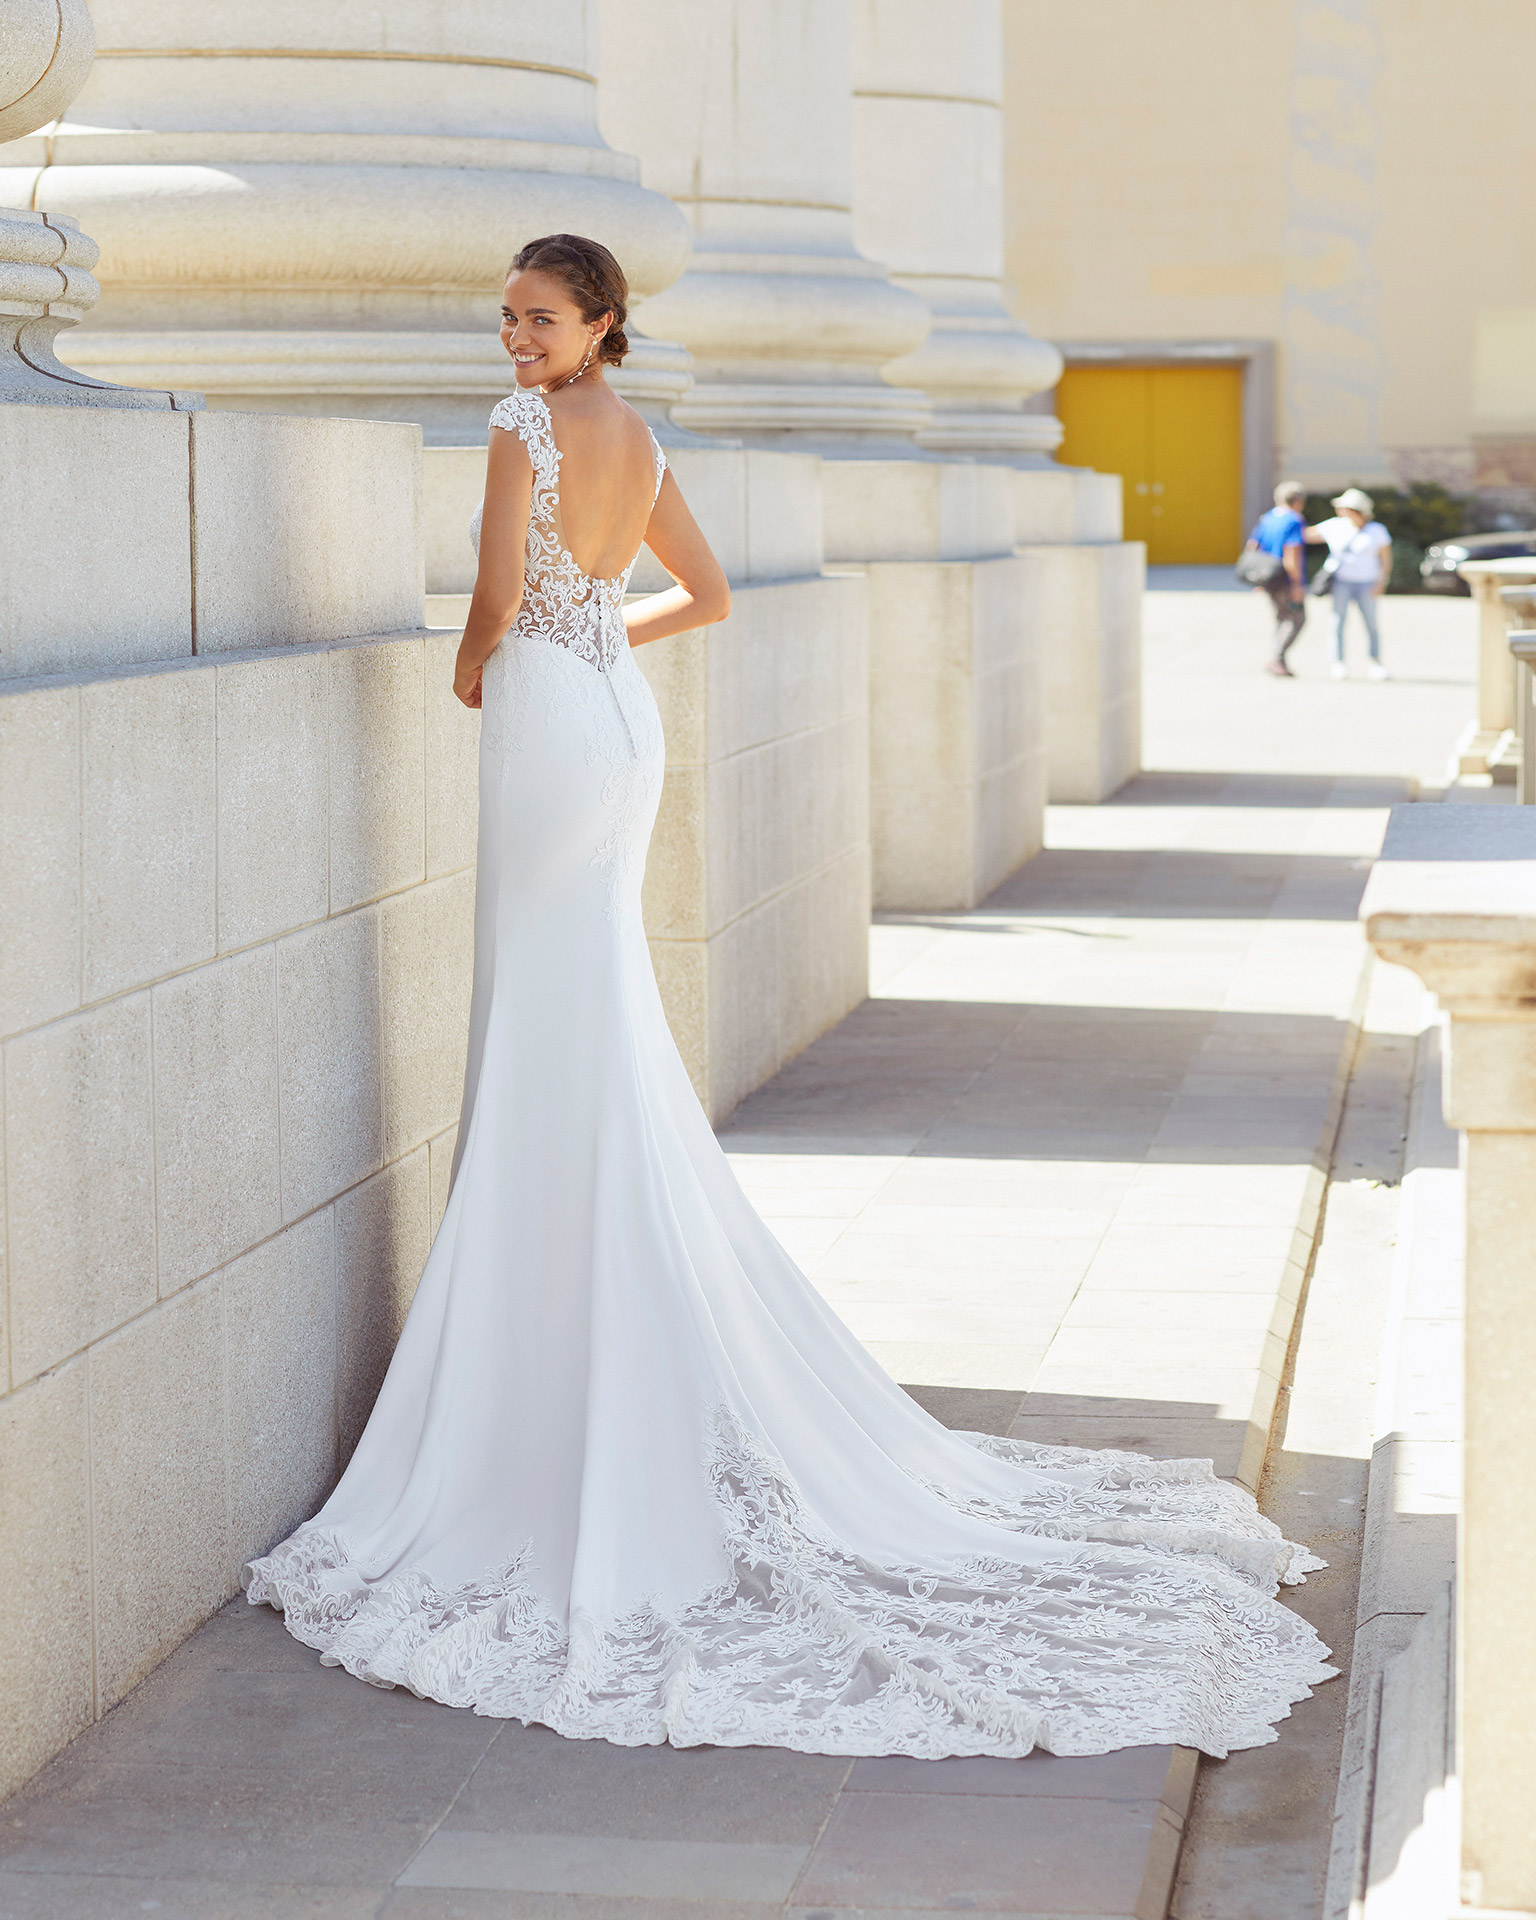 Sheath-style wedding dress in stretch crepe and lace. Bateau neckline with sweetheart underlay, low back, short sleeves with appliqués and trefoil train. 2021  Collection.